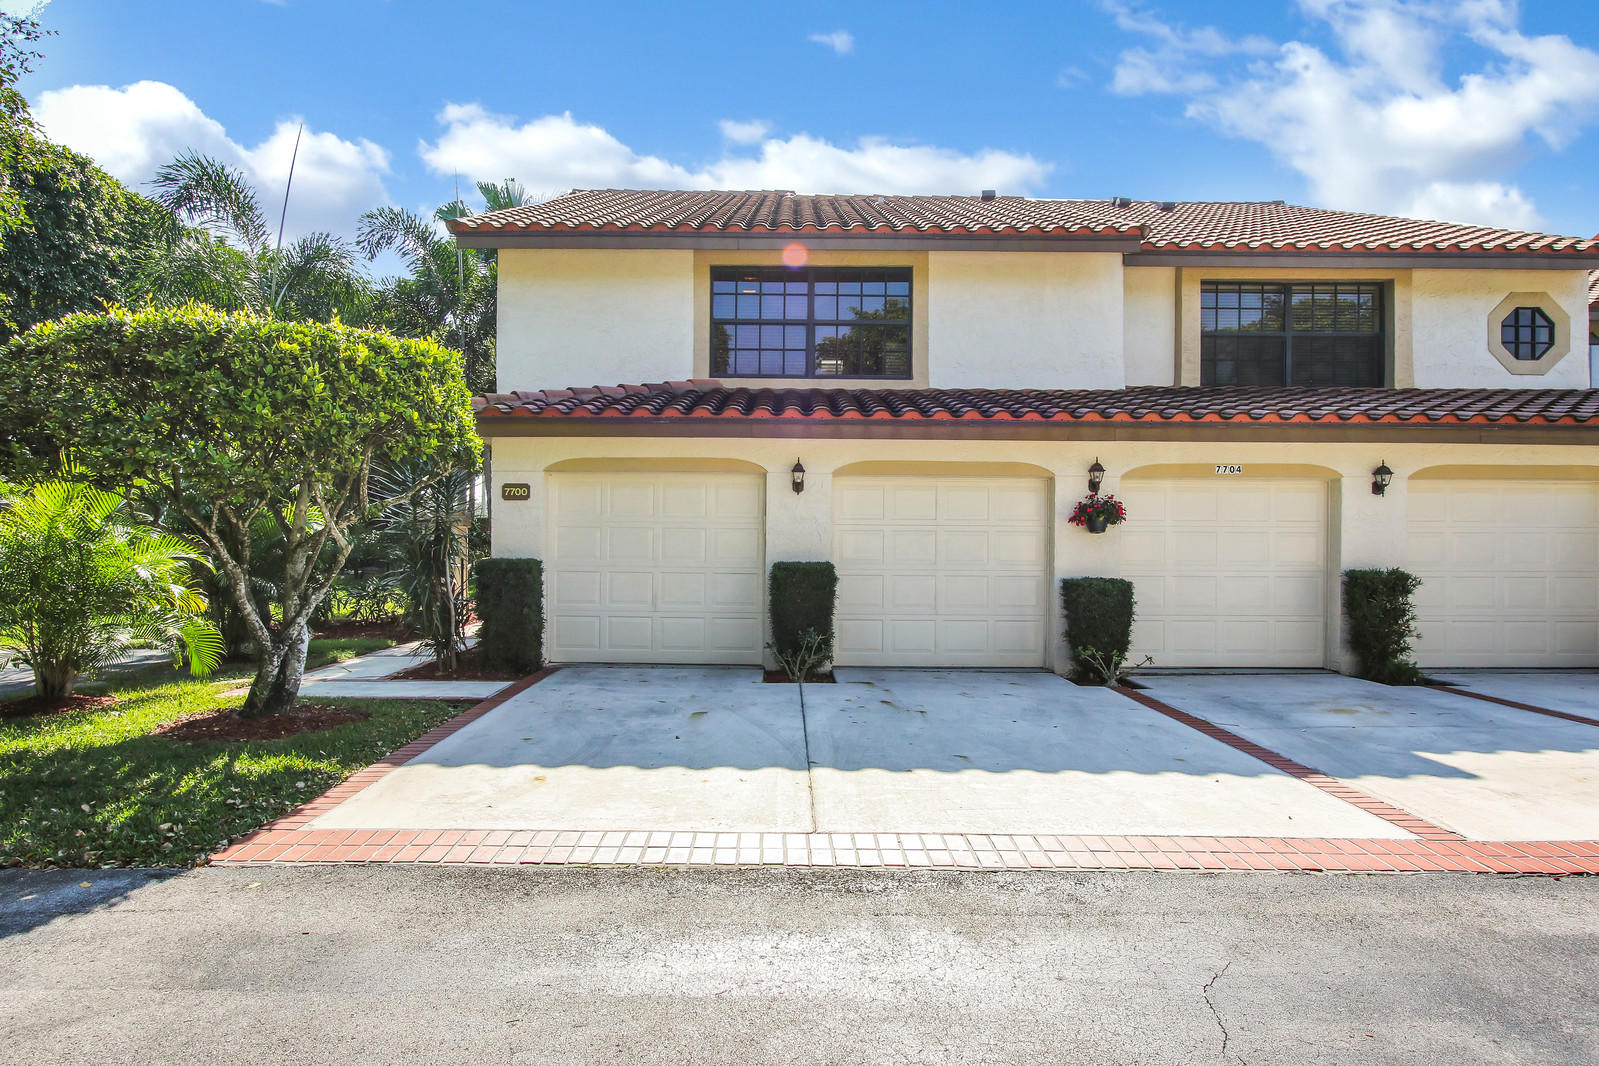 Photo of 7700 La Mirada Drive, Boca Raton, FL 33433